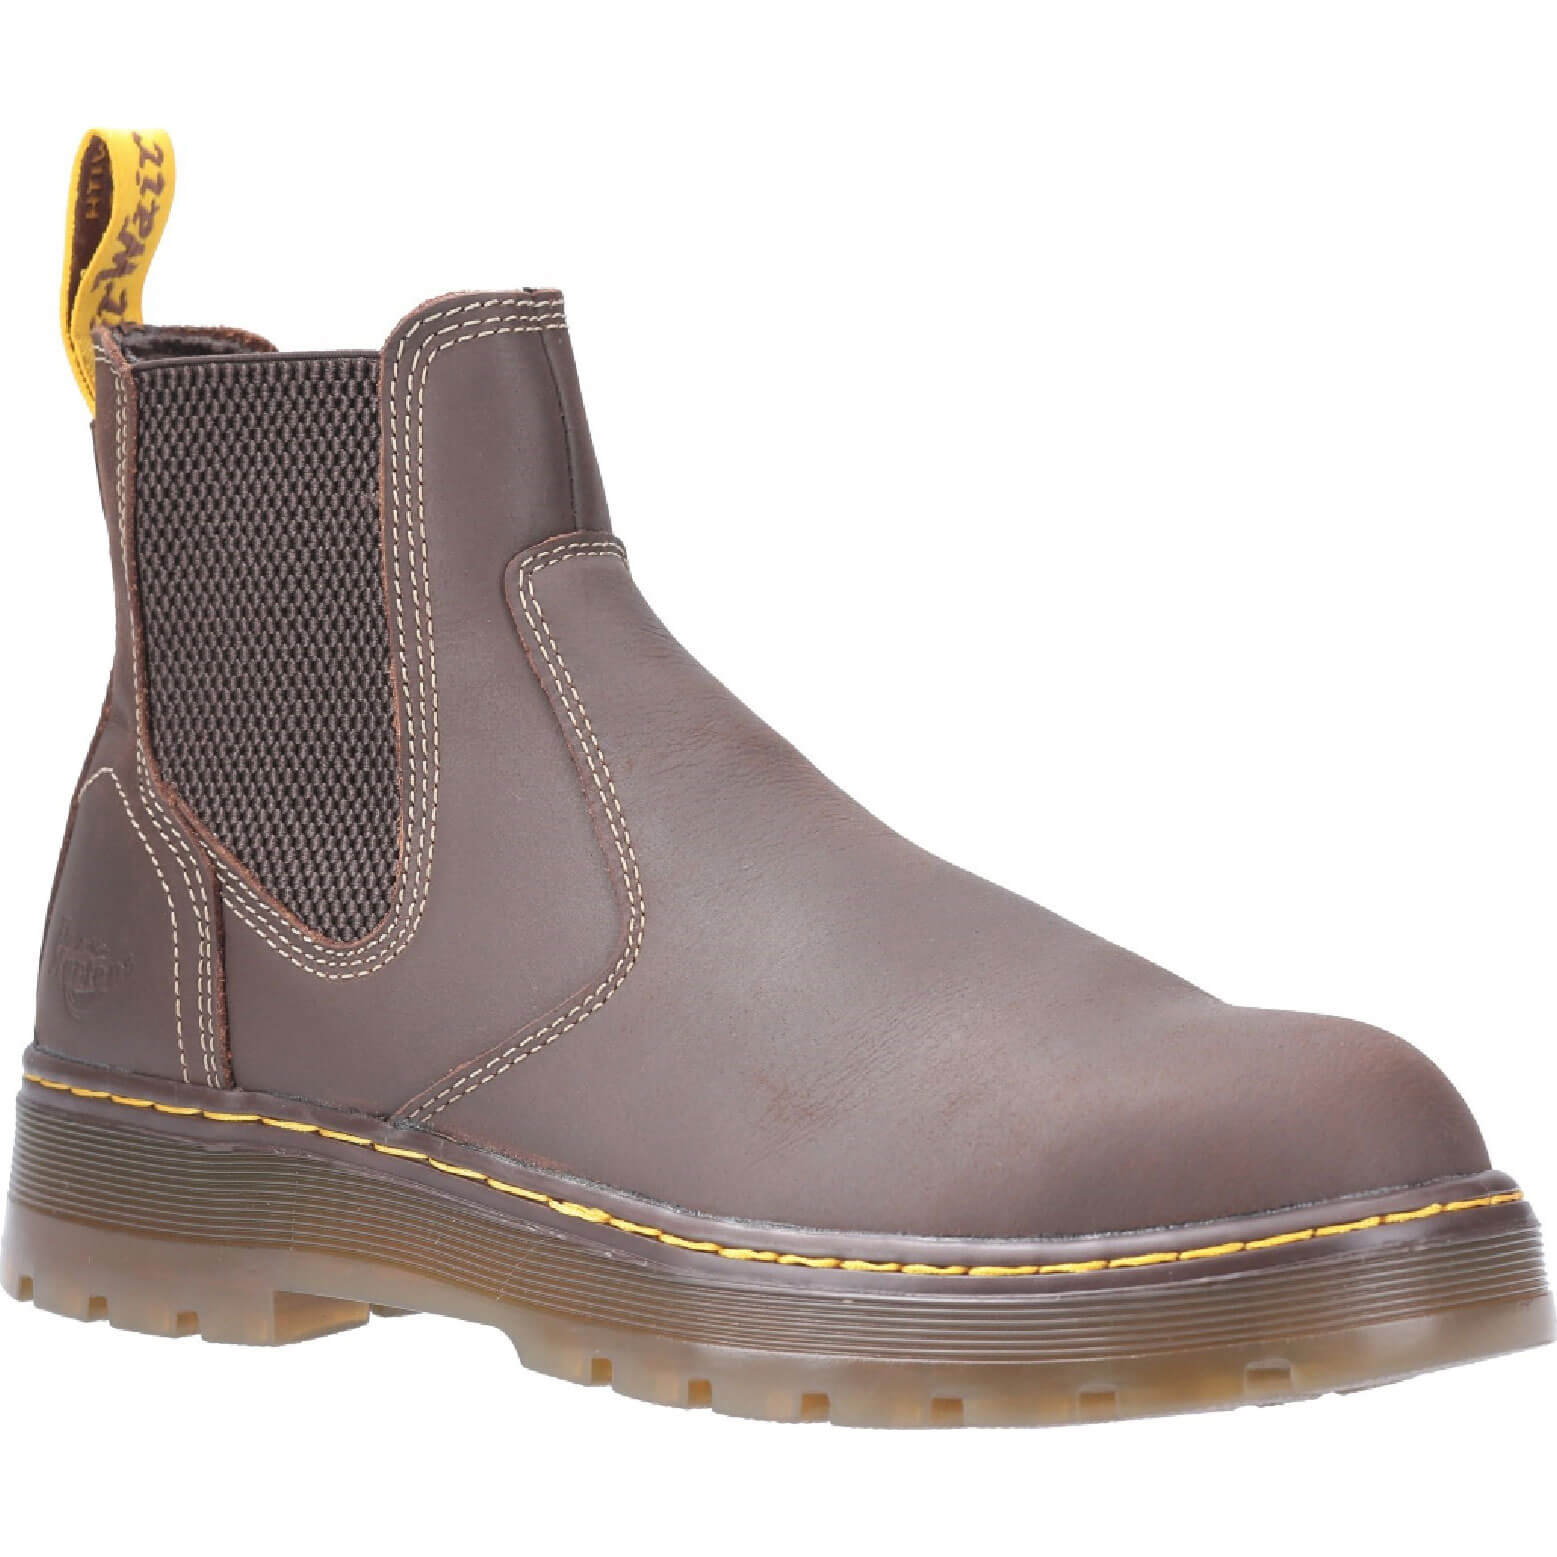 Image of Dr Martens Eaves Elasticated Safety Boot Brown Size 10